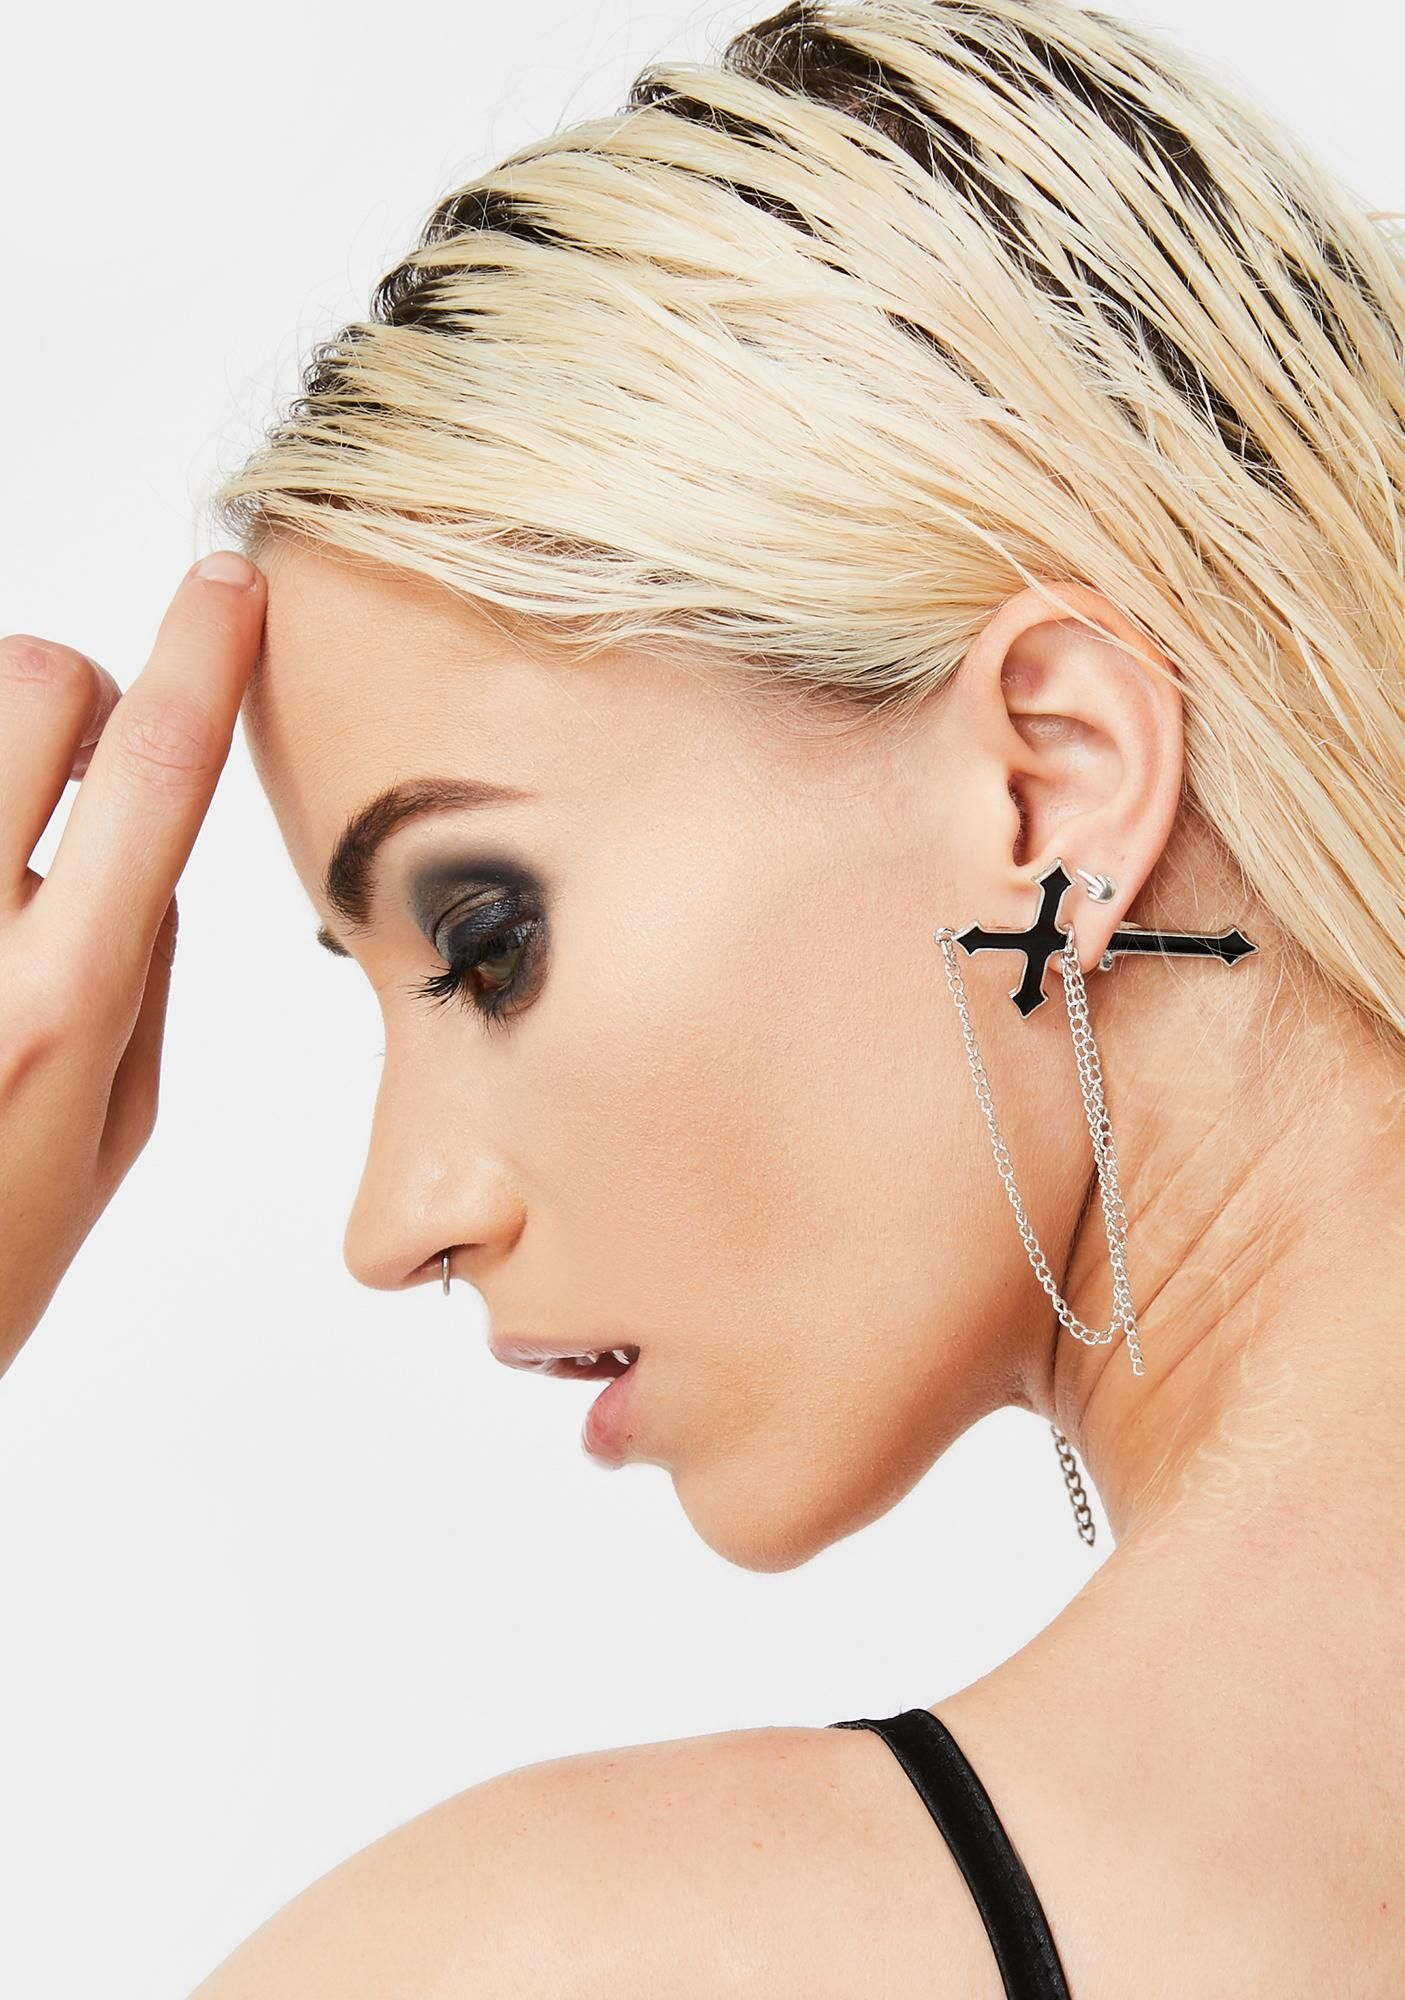 Get Cross With Me Chain Earring Chain earrings, Goth